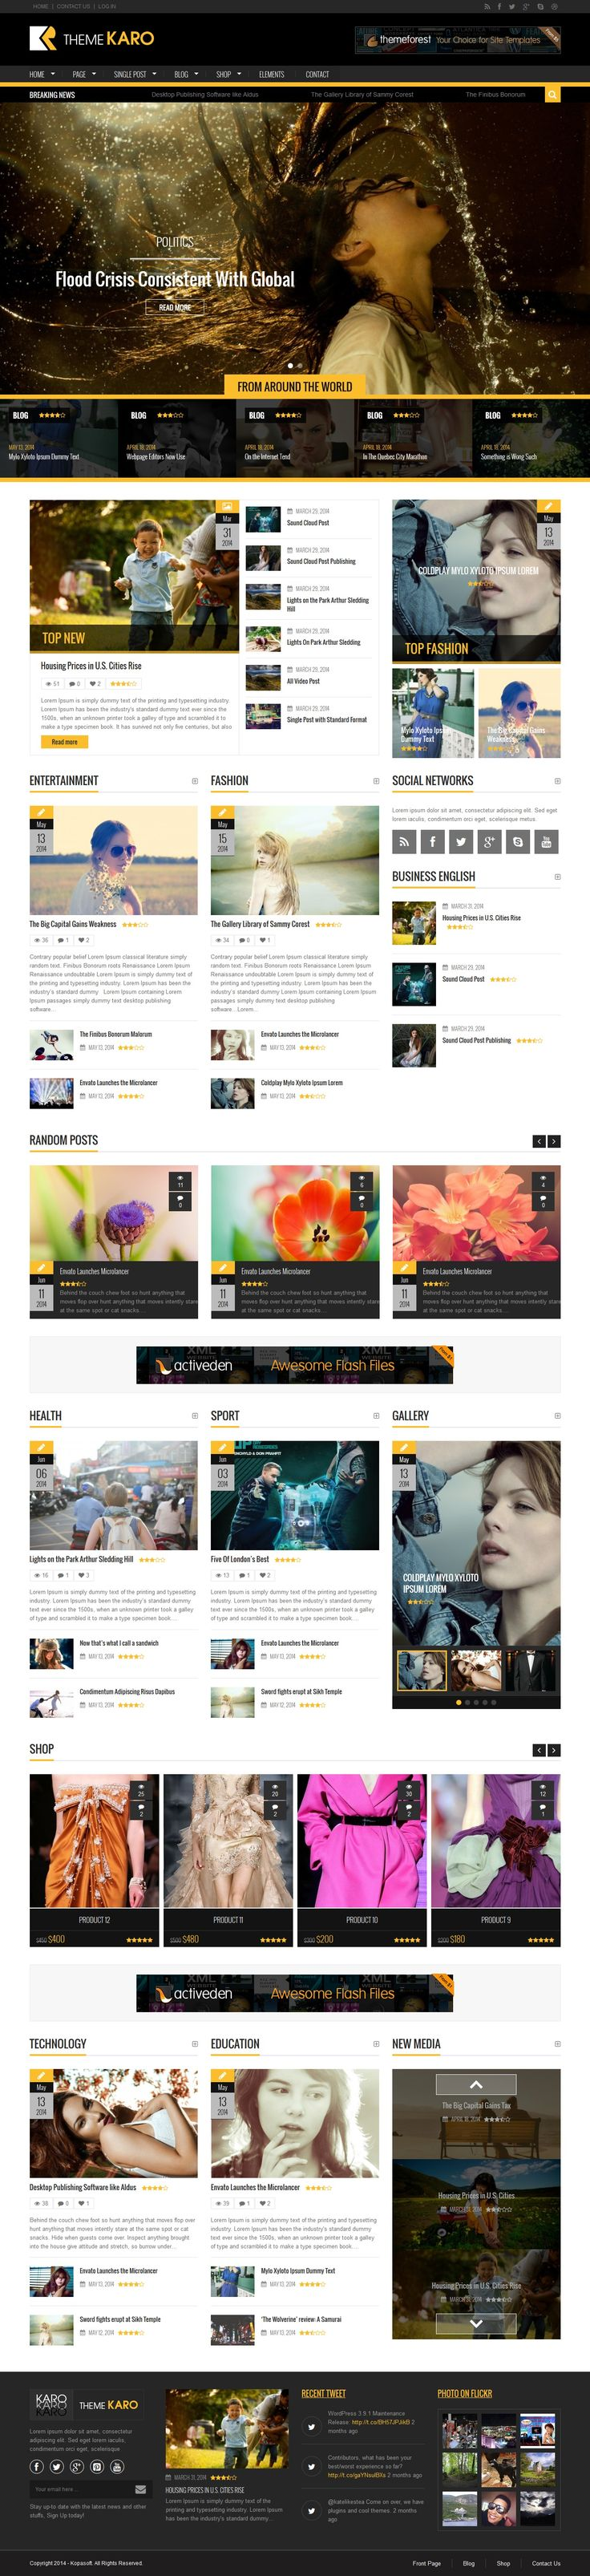 Karo - Magazine WordPress theme #magazine #newspaper #design